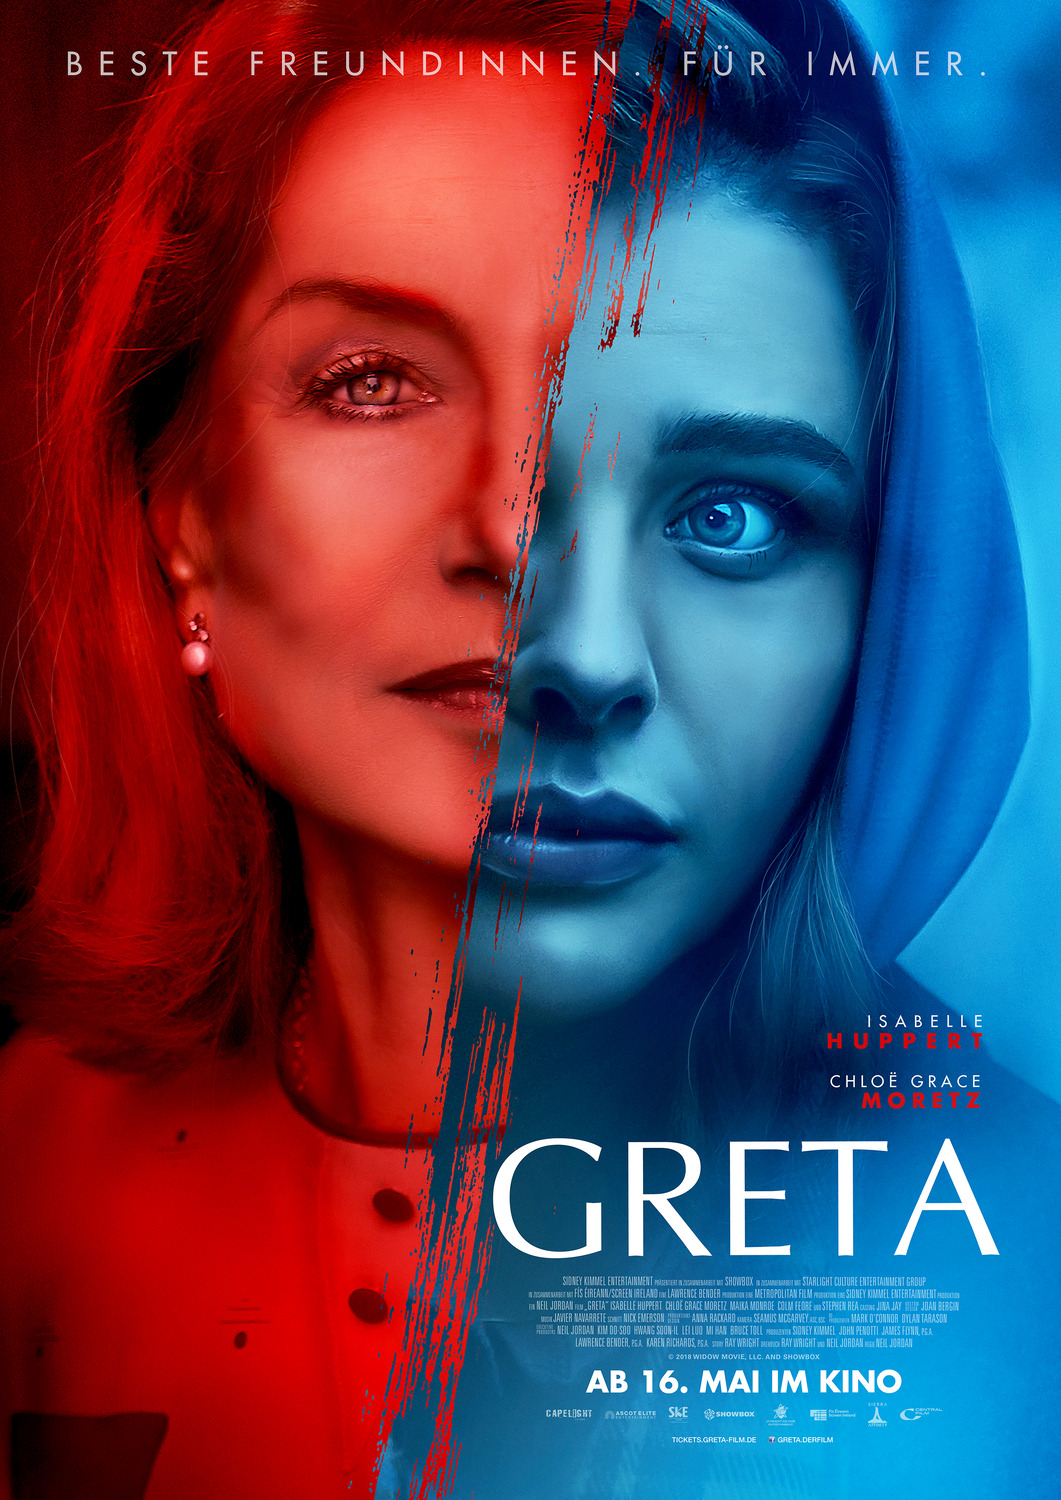 Extra Large Movie Poster Image for Greta (#4 of 4)